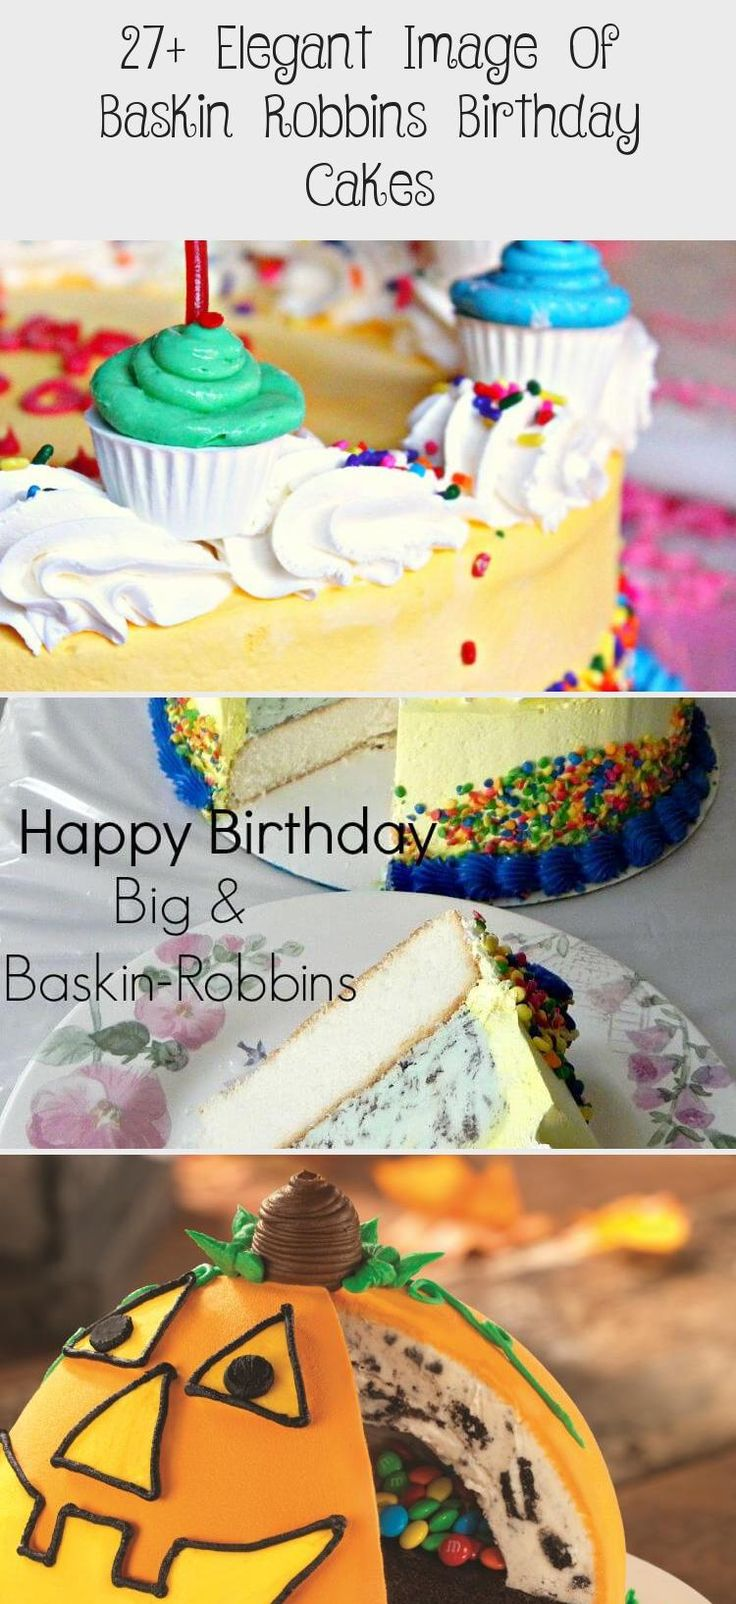 how much is a cake at baskin robbins